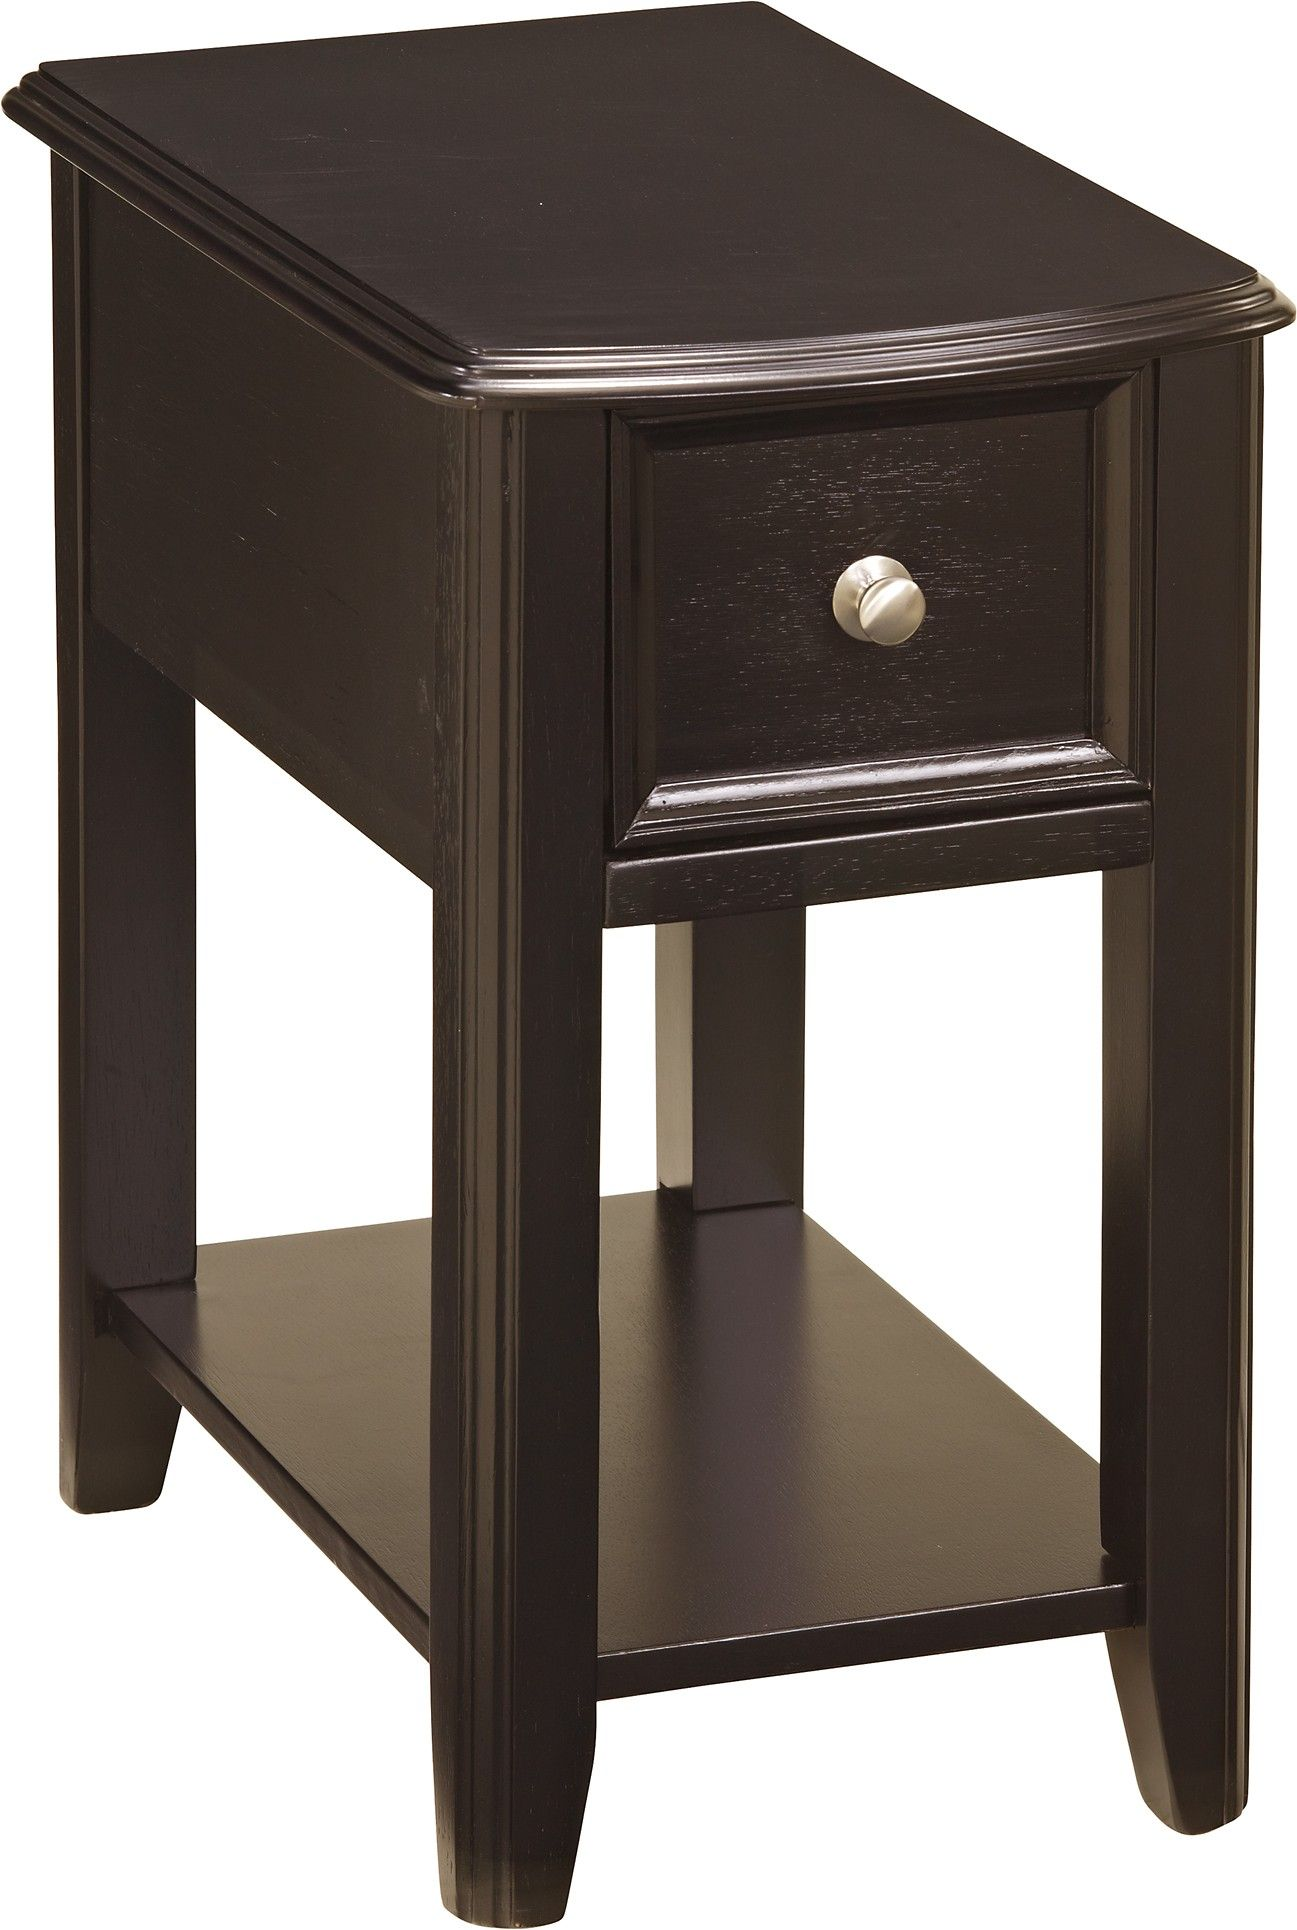 Chair Side Table With Storage Ashley Breegin T007 371 Signature Design Chair Side End